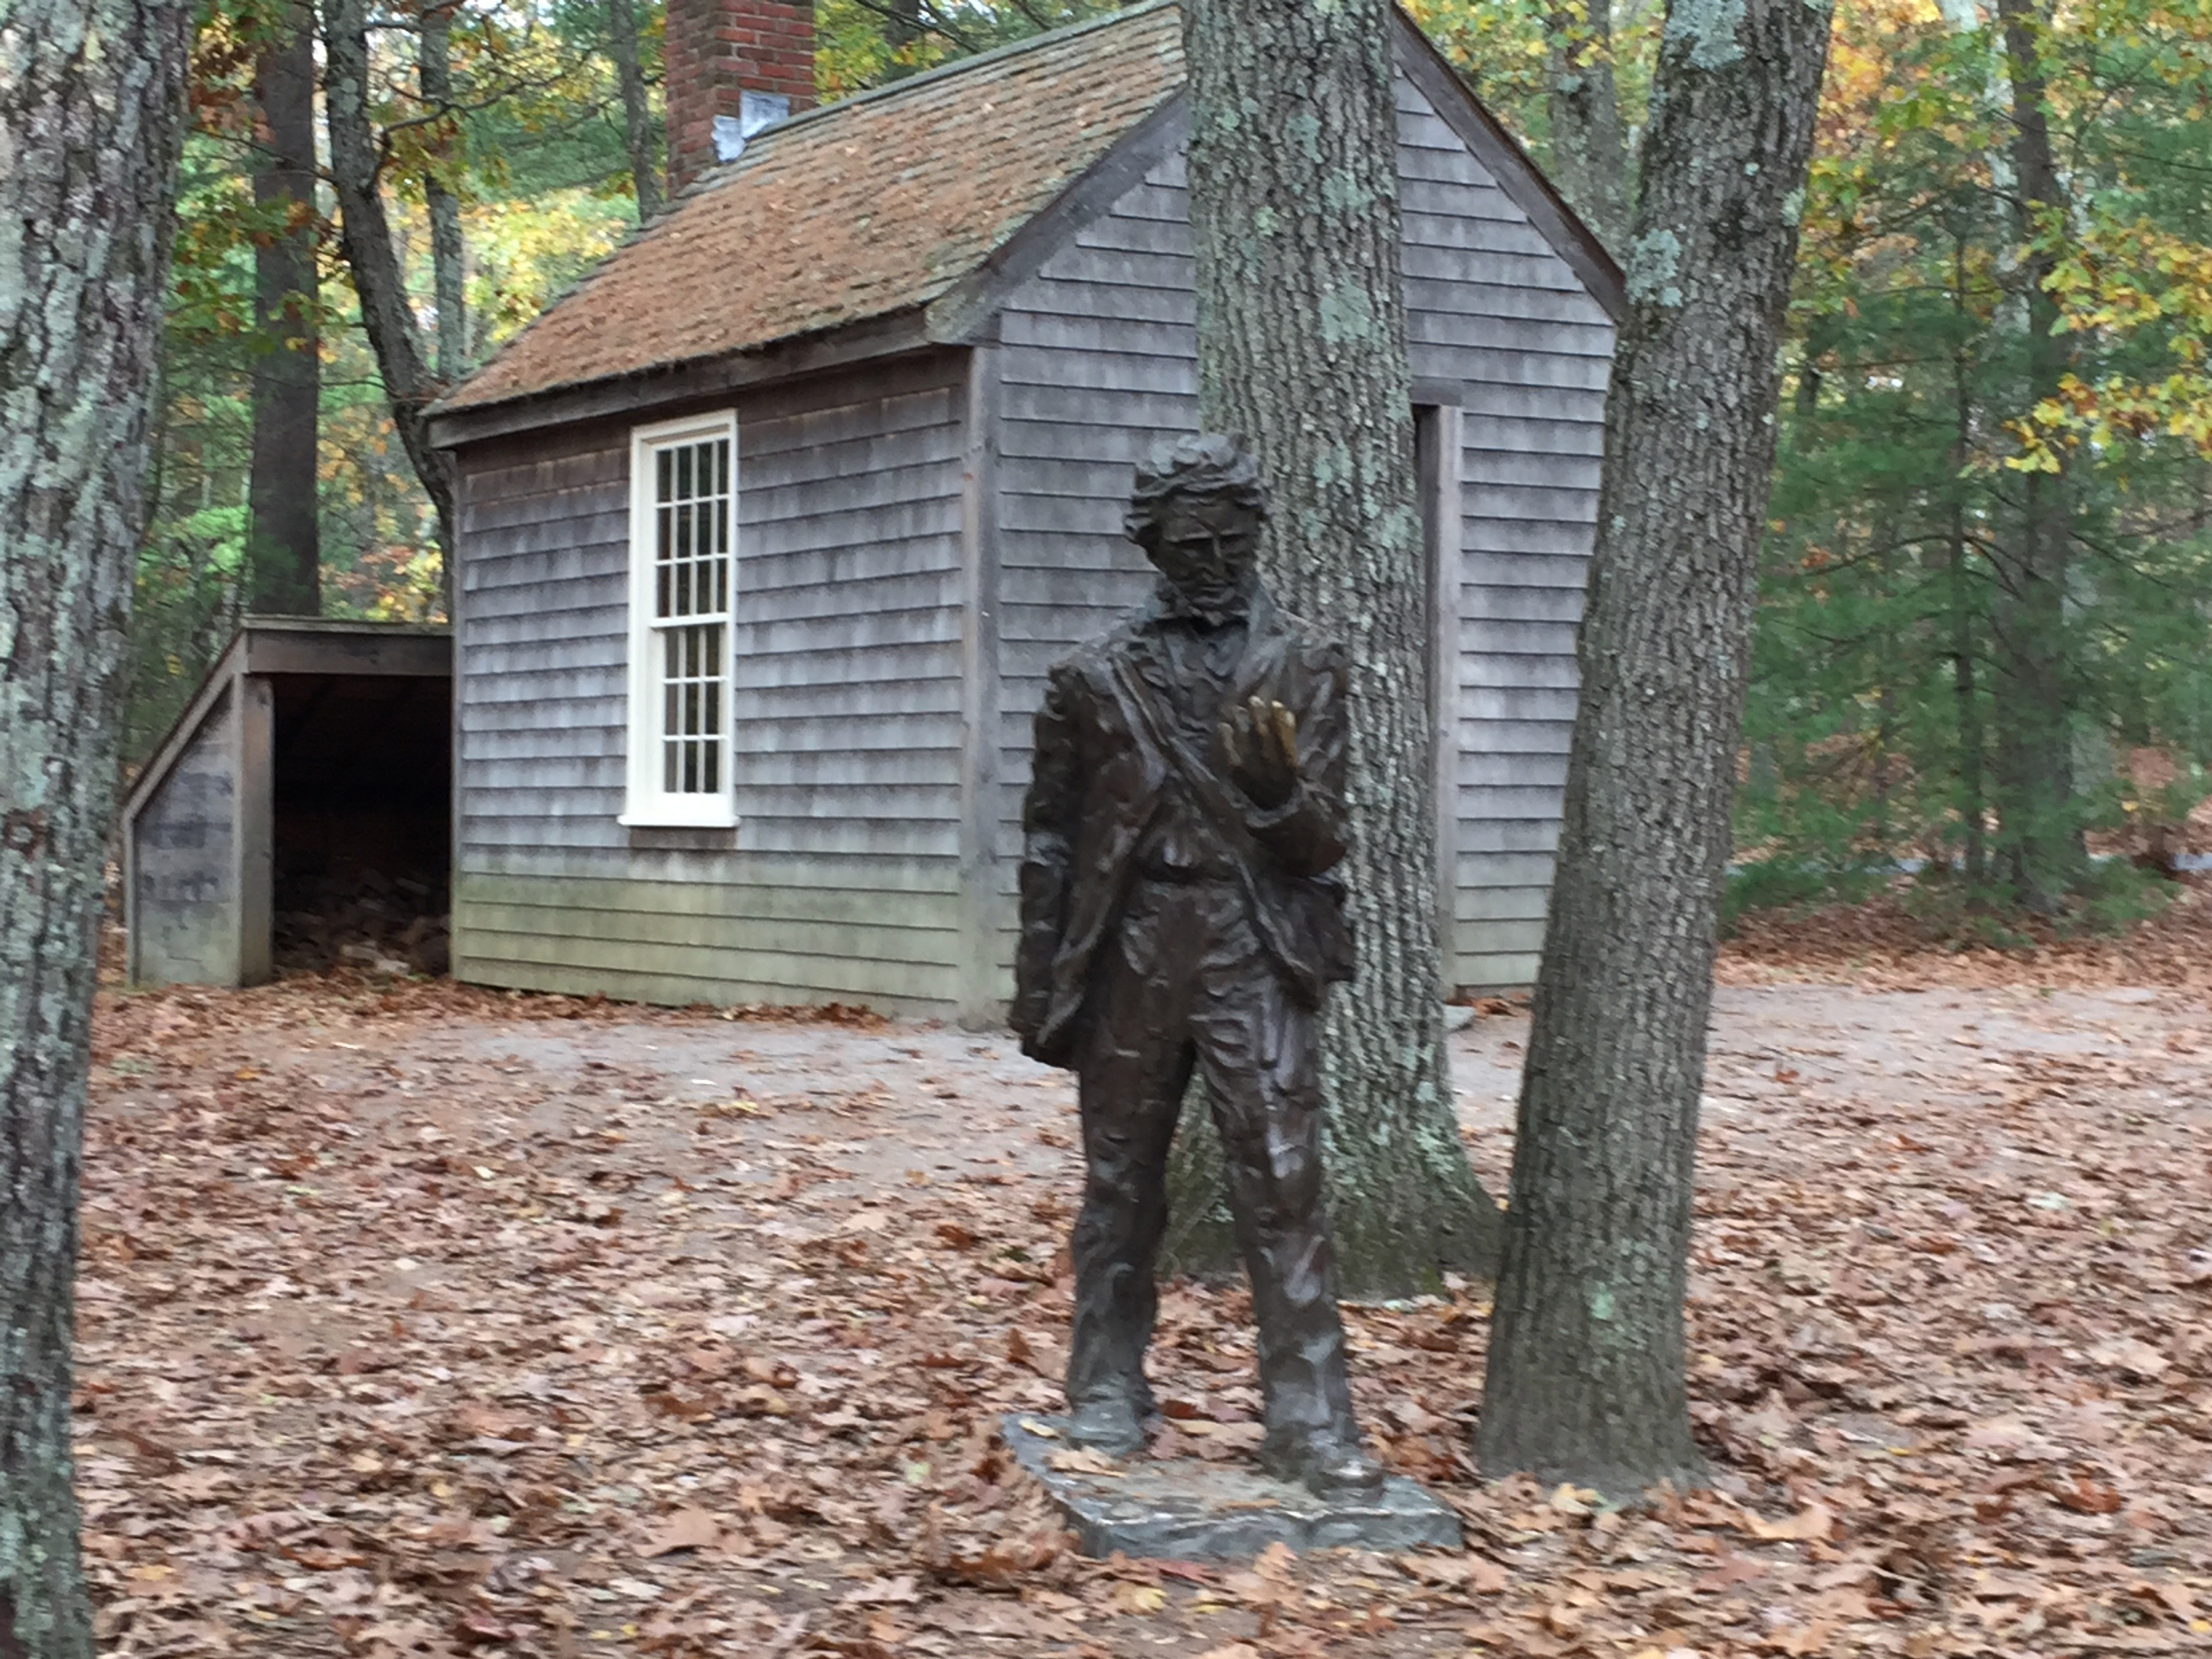 A Walk through Walden Woods in search of Thoreau's Cabin.